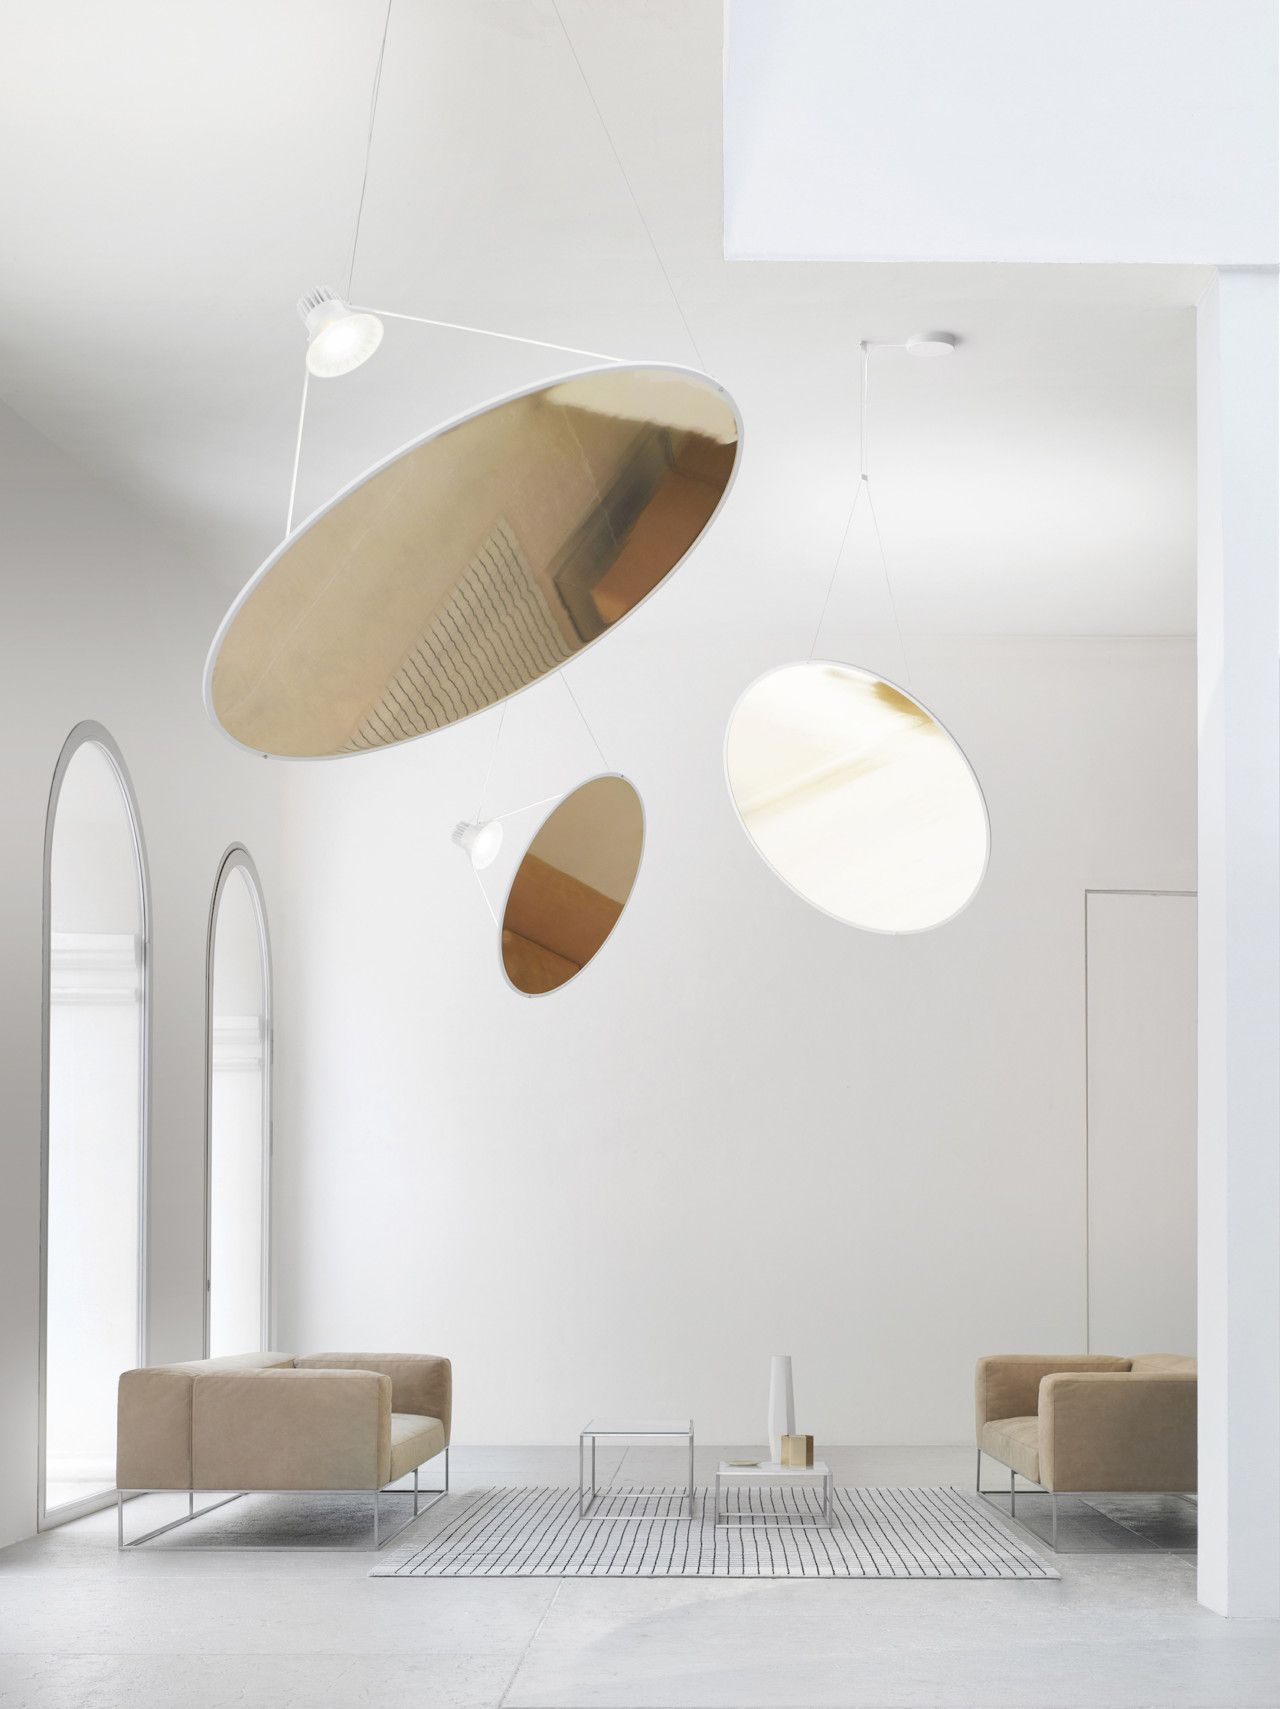 Amisol A Large Pendant Lamp That Actually Takes Up A Minimal Amount Of Volume Lamp Design Interior Modern Lighting Design